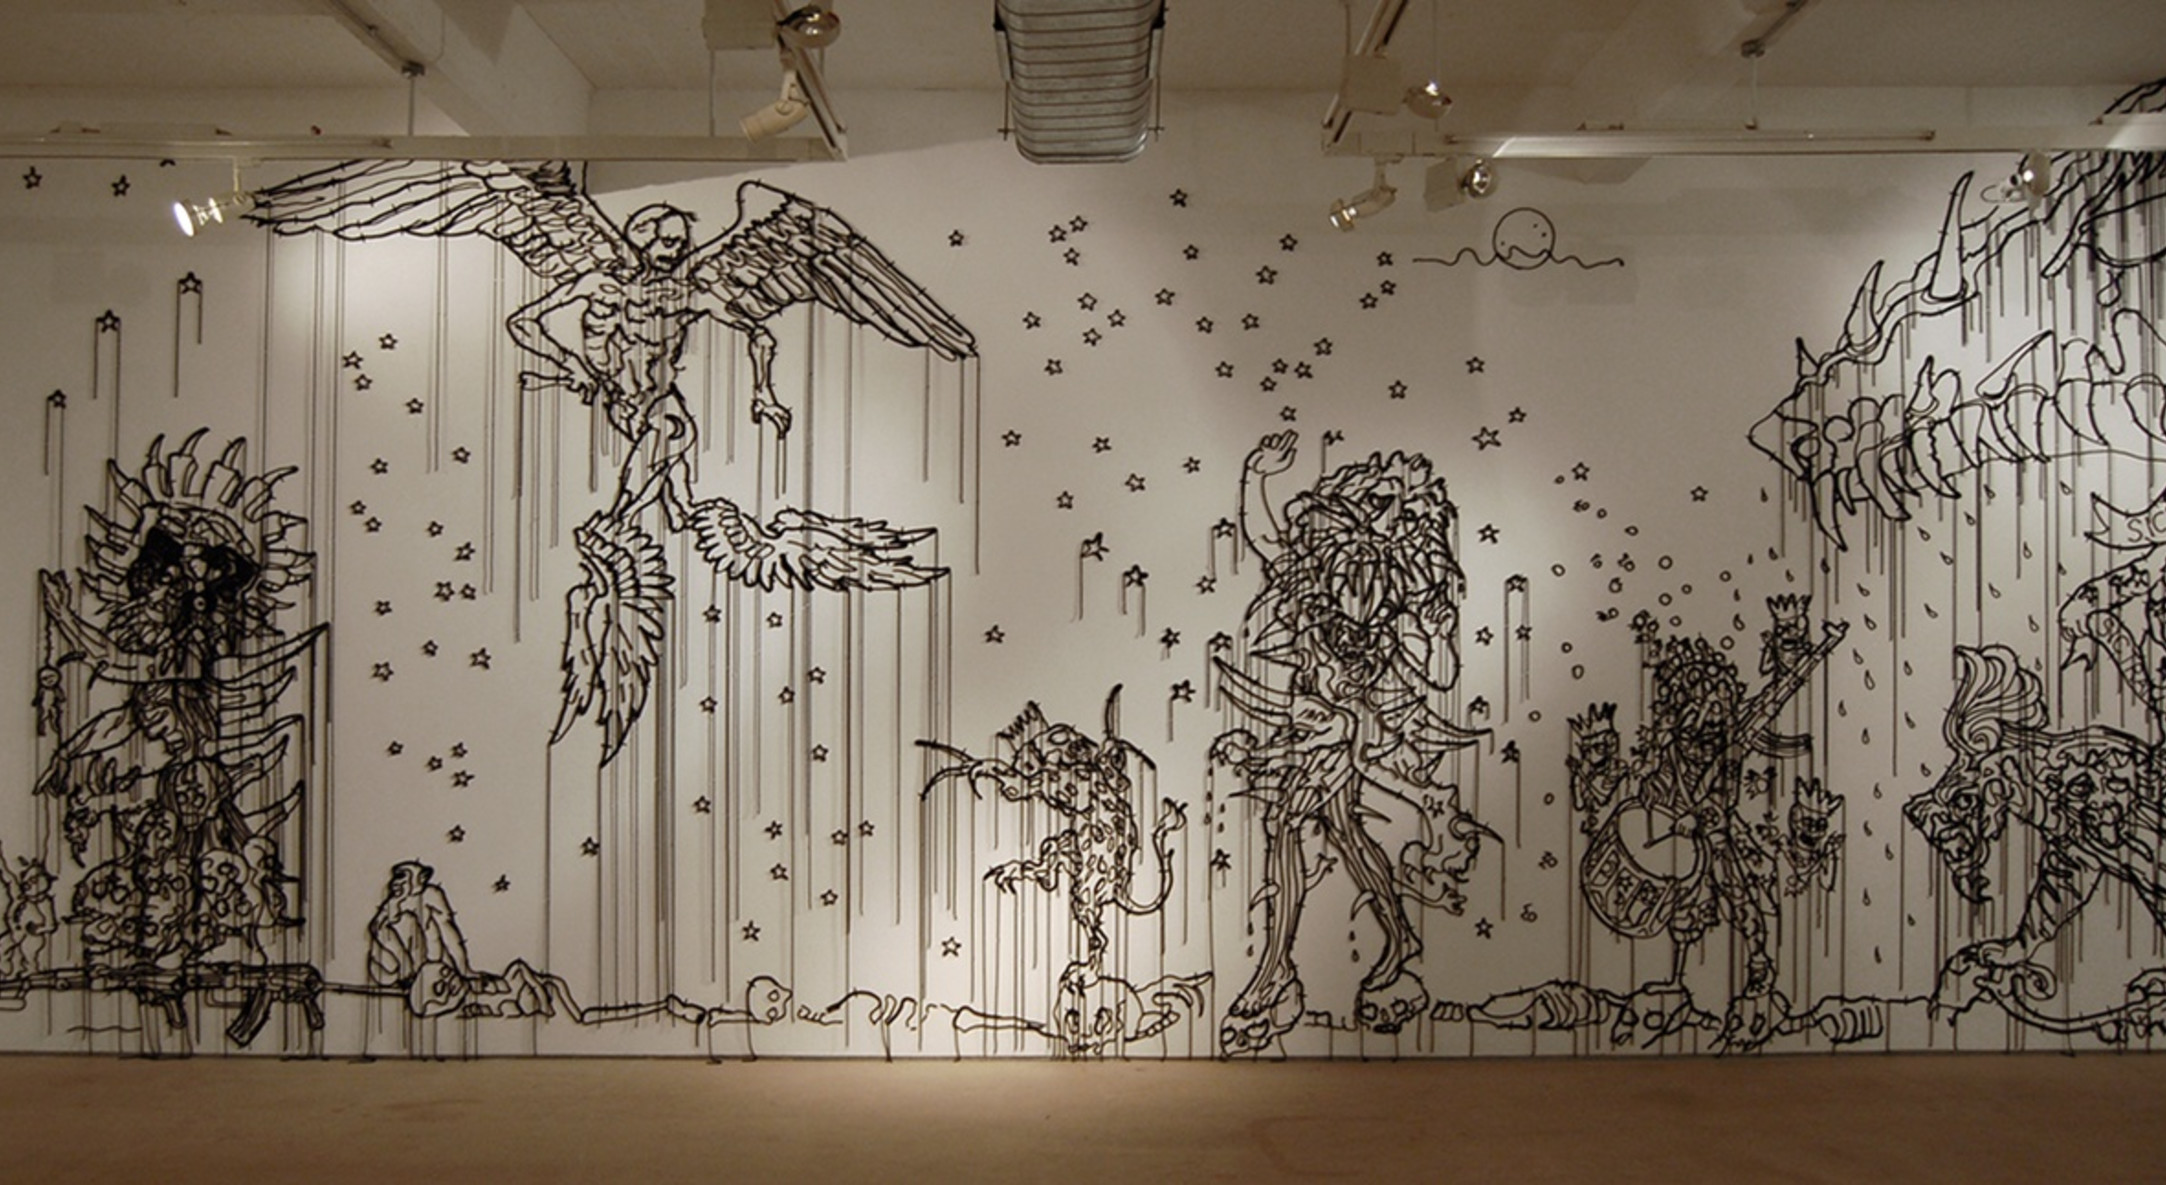 Installation view of Hew Locke The Nameless at Hales Gallery London, 2010